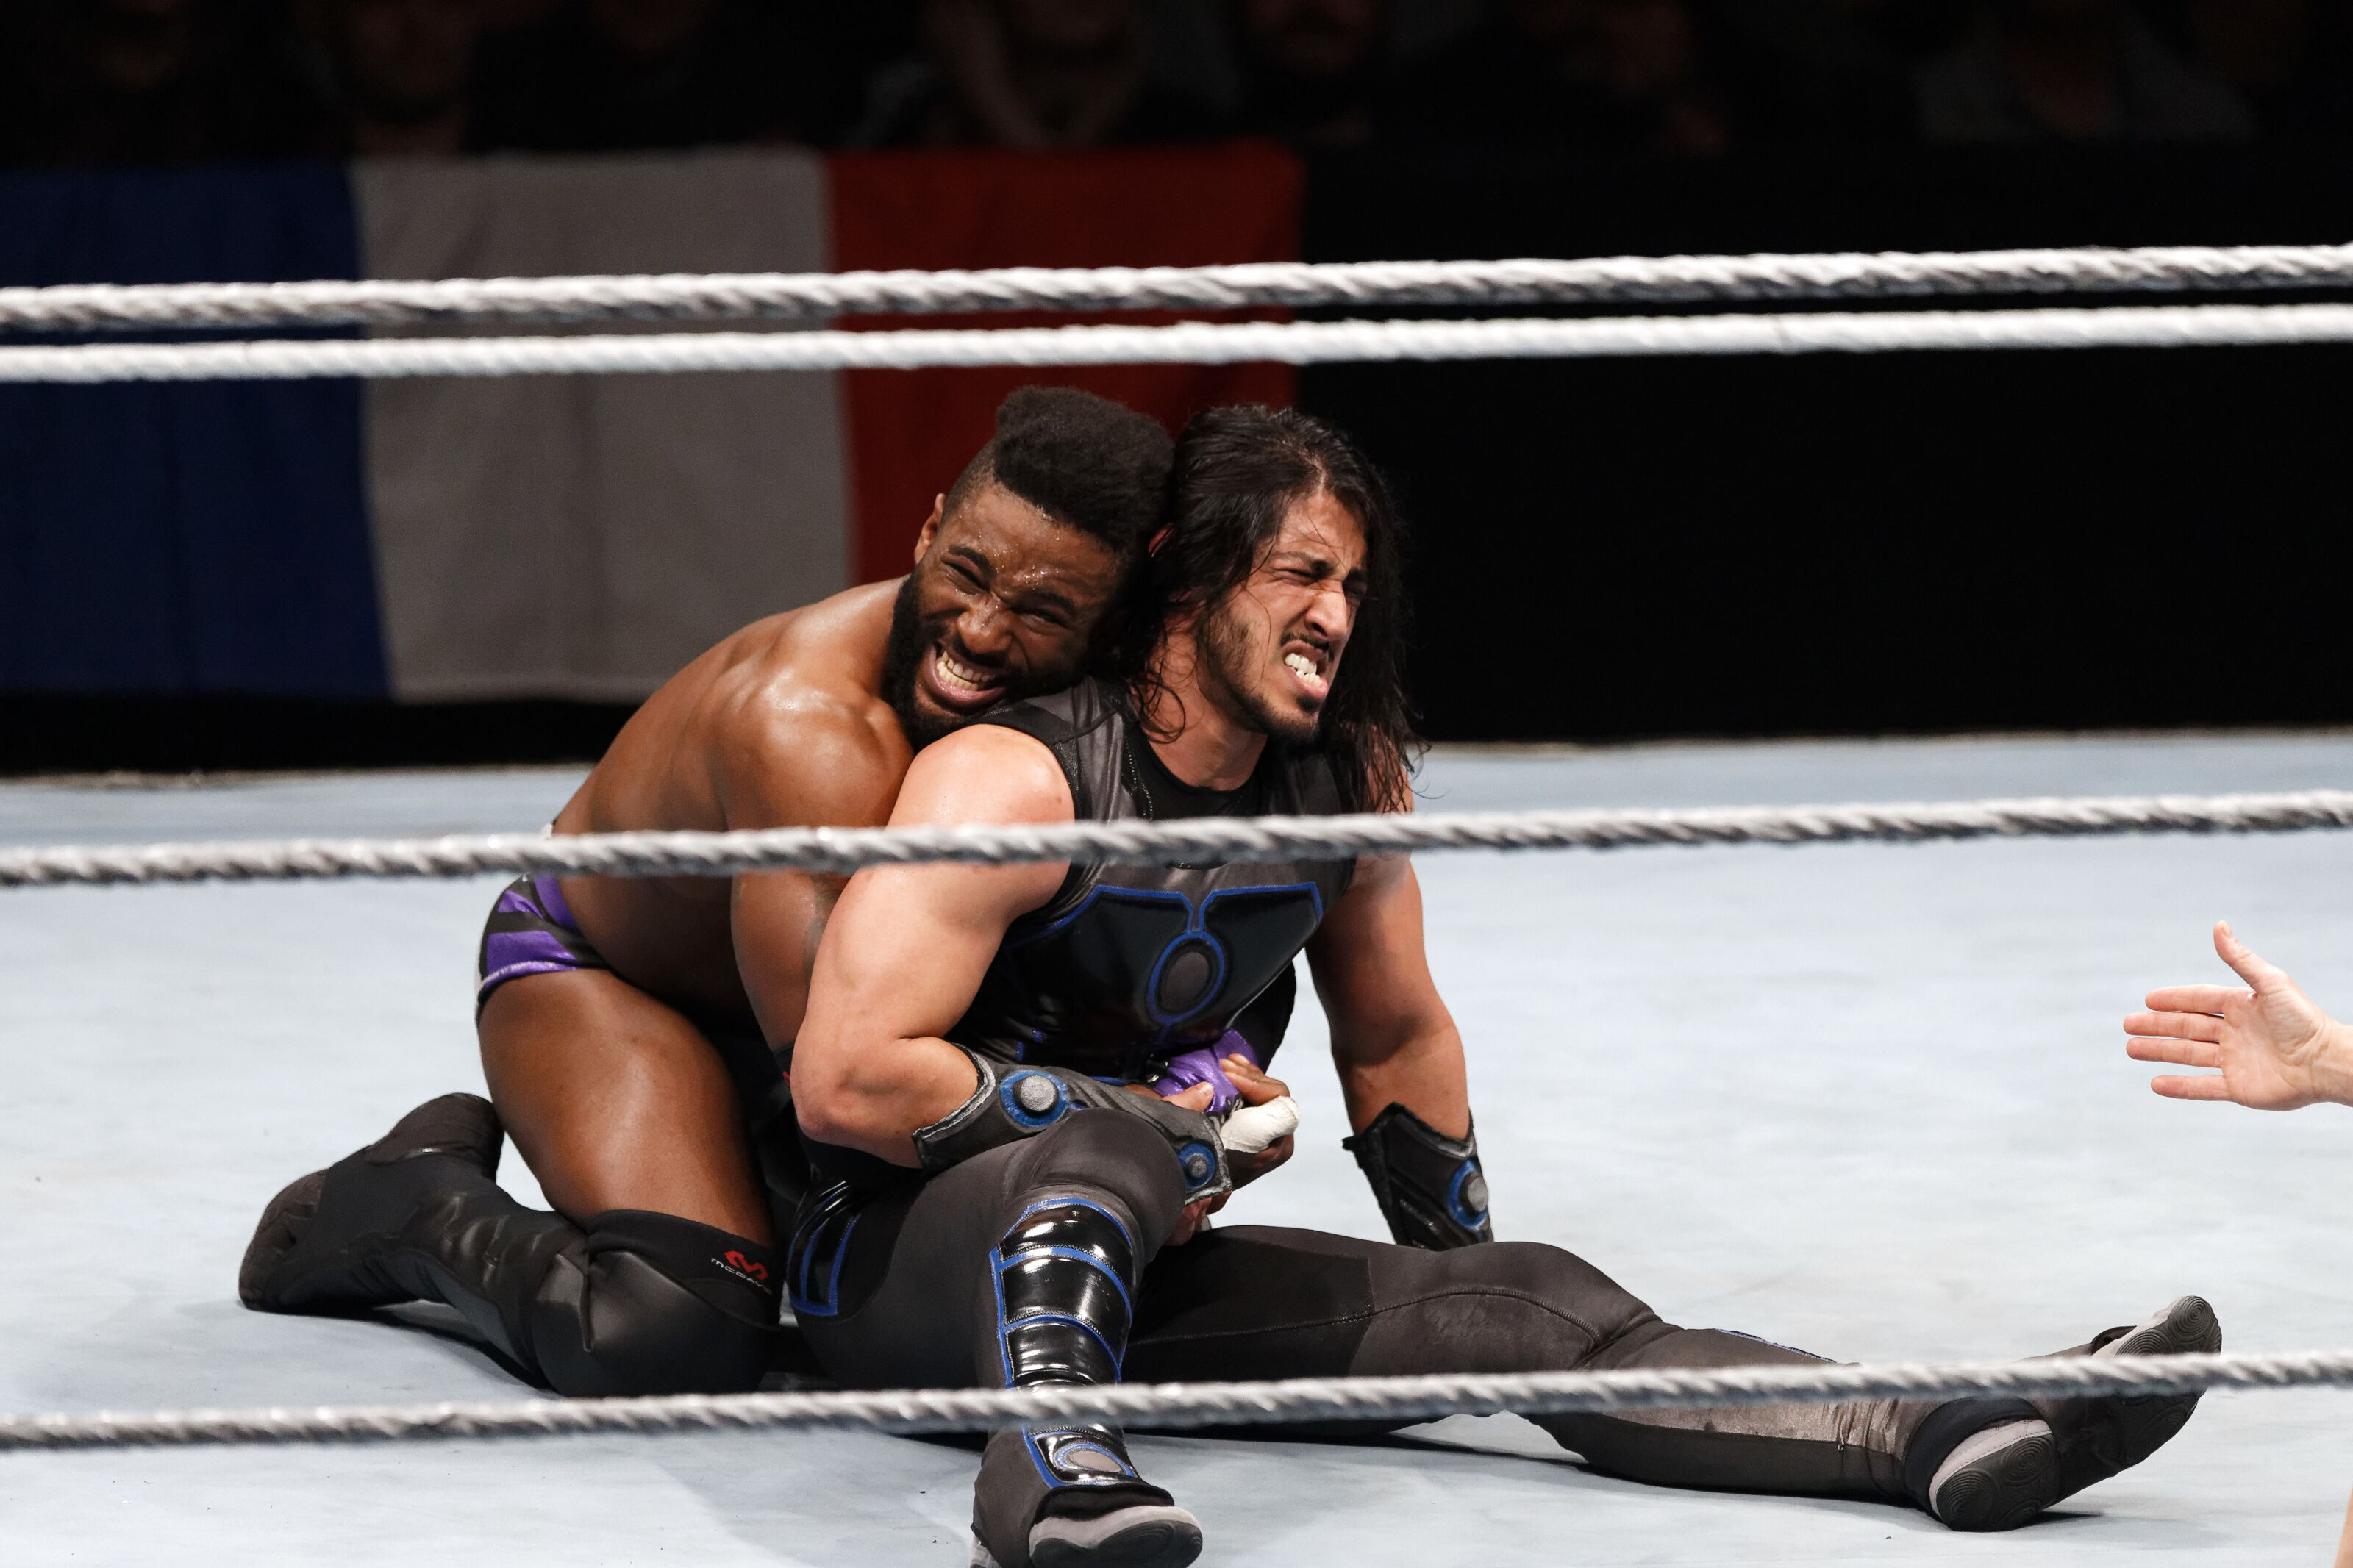 PARIS, FRANCE - MAY 19: Cedric Alexander (L) in action vs Mustafa Ali during WWE Live AccorHotels Arena Popb Paris Bercy on May 19, 2018 in Paris, France. (Photo by Sylvain Lefevre/Getty Images)